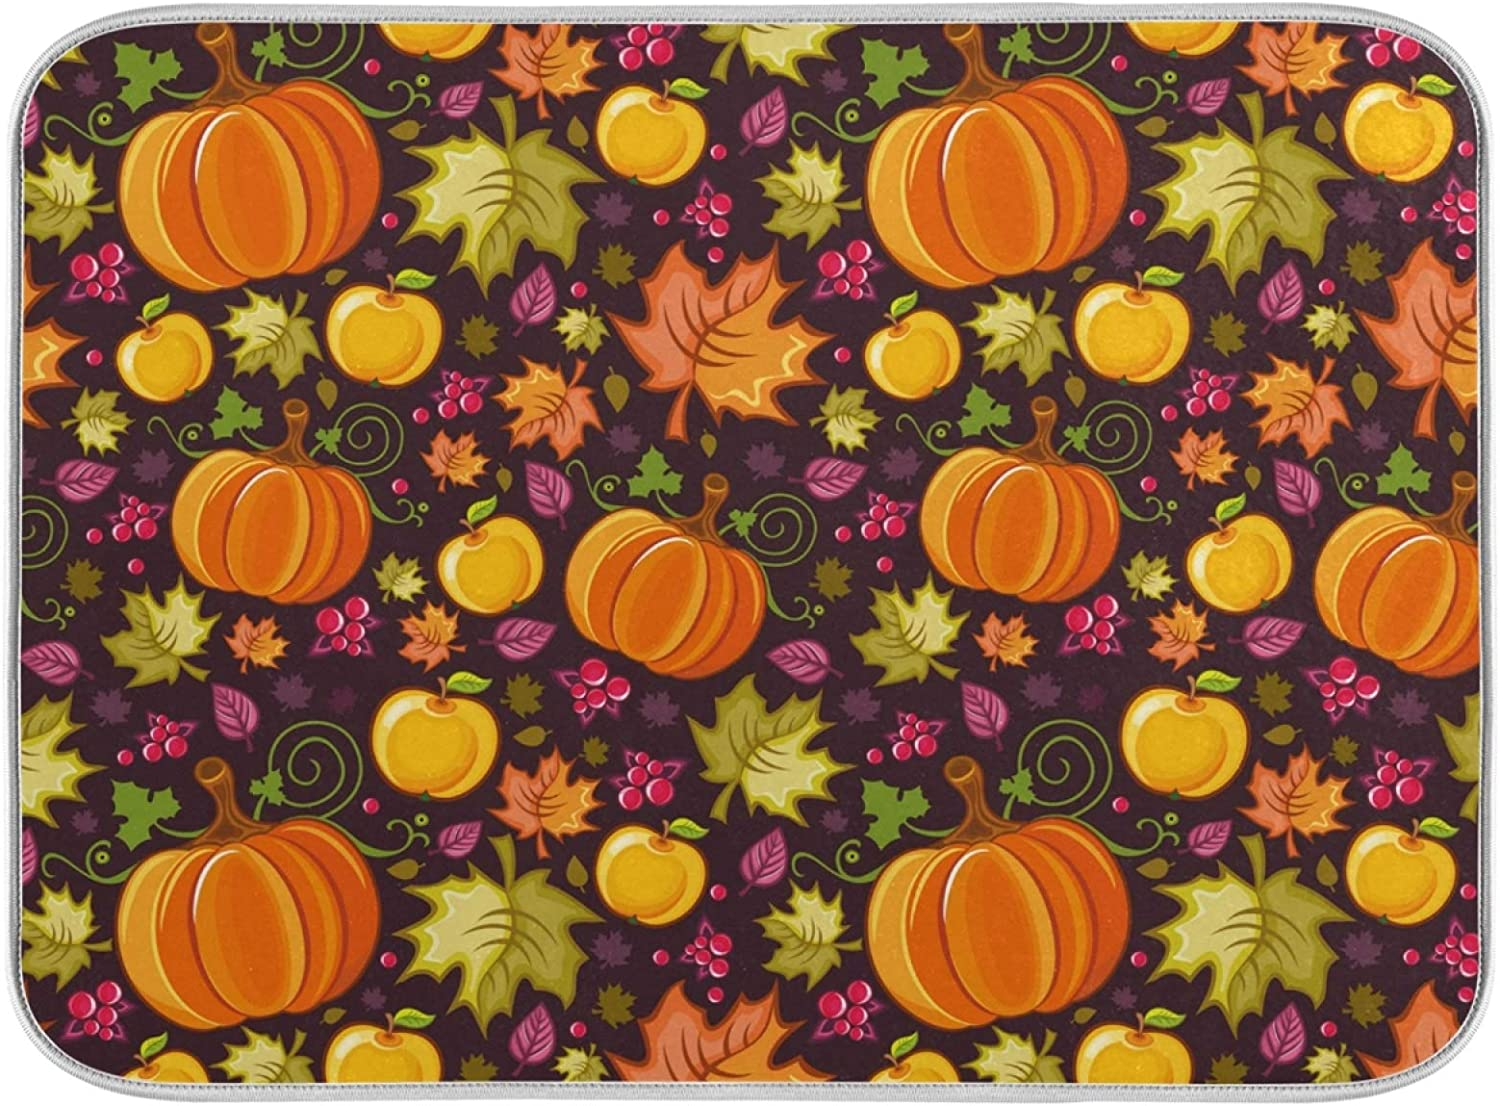 Qilmy Autumn Pumpkin Cherry Apple Dish Drying Mat Tableware Absorption Water Mats Home Decoration Drying pad for Kitchen Countertop-18X24 Inch